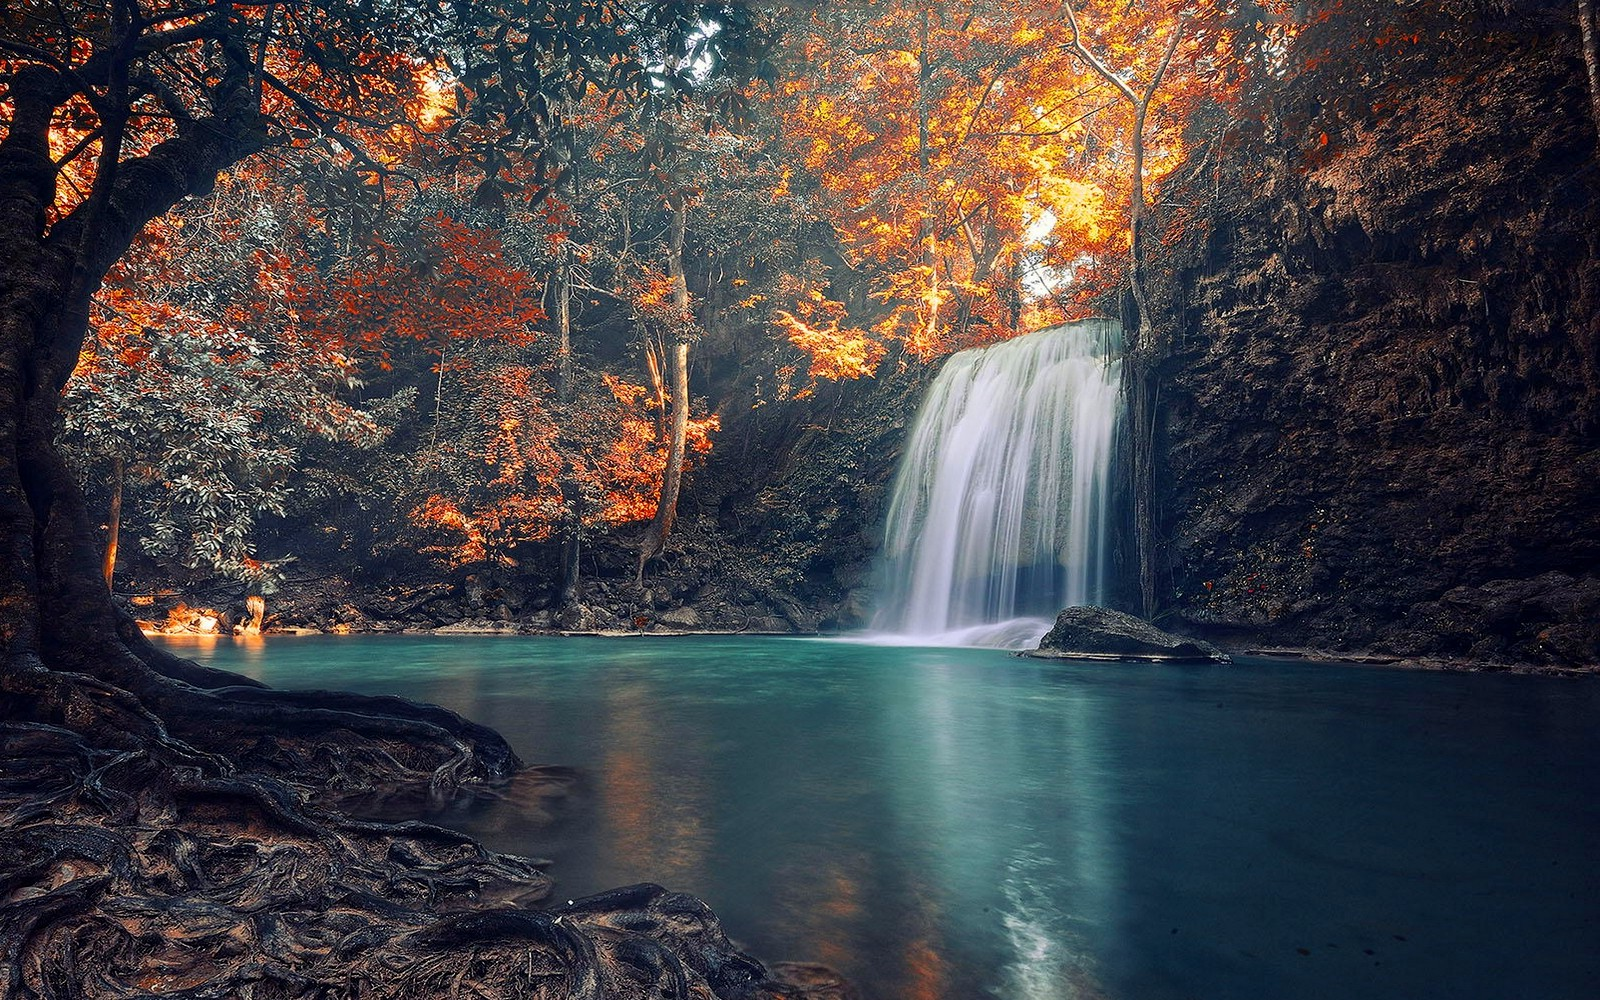 Fall Desktop Wallpaper Full Screen Nature Waterfall Trees Landscape Roots Fall Tropical